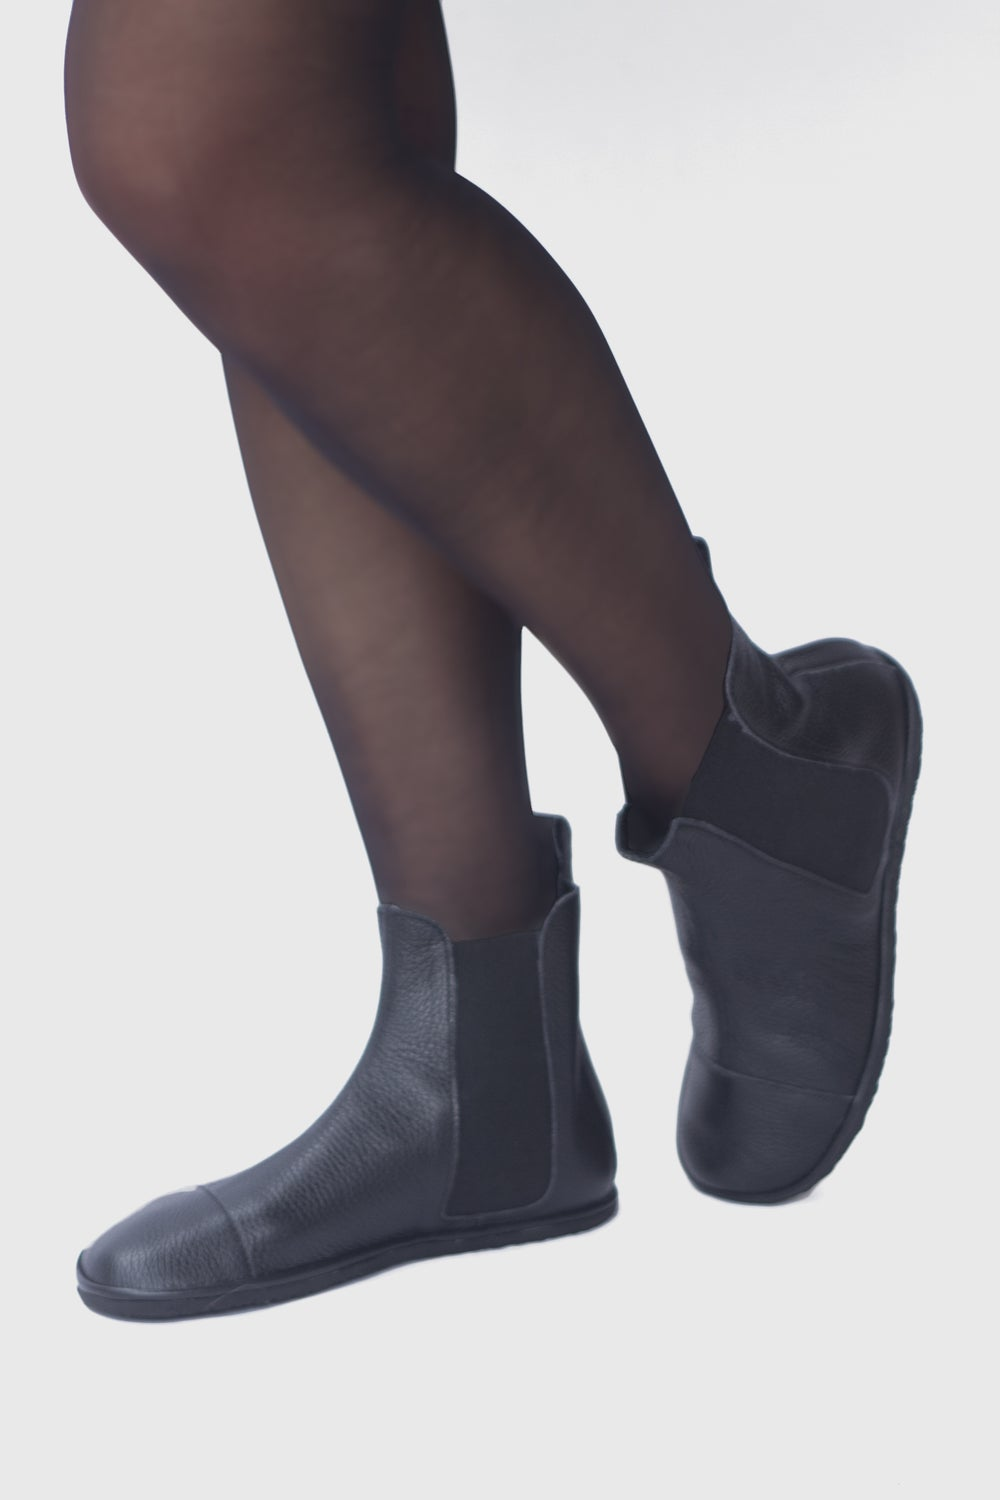 Image of High Top Chelsea boots - in Pebbled Black